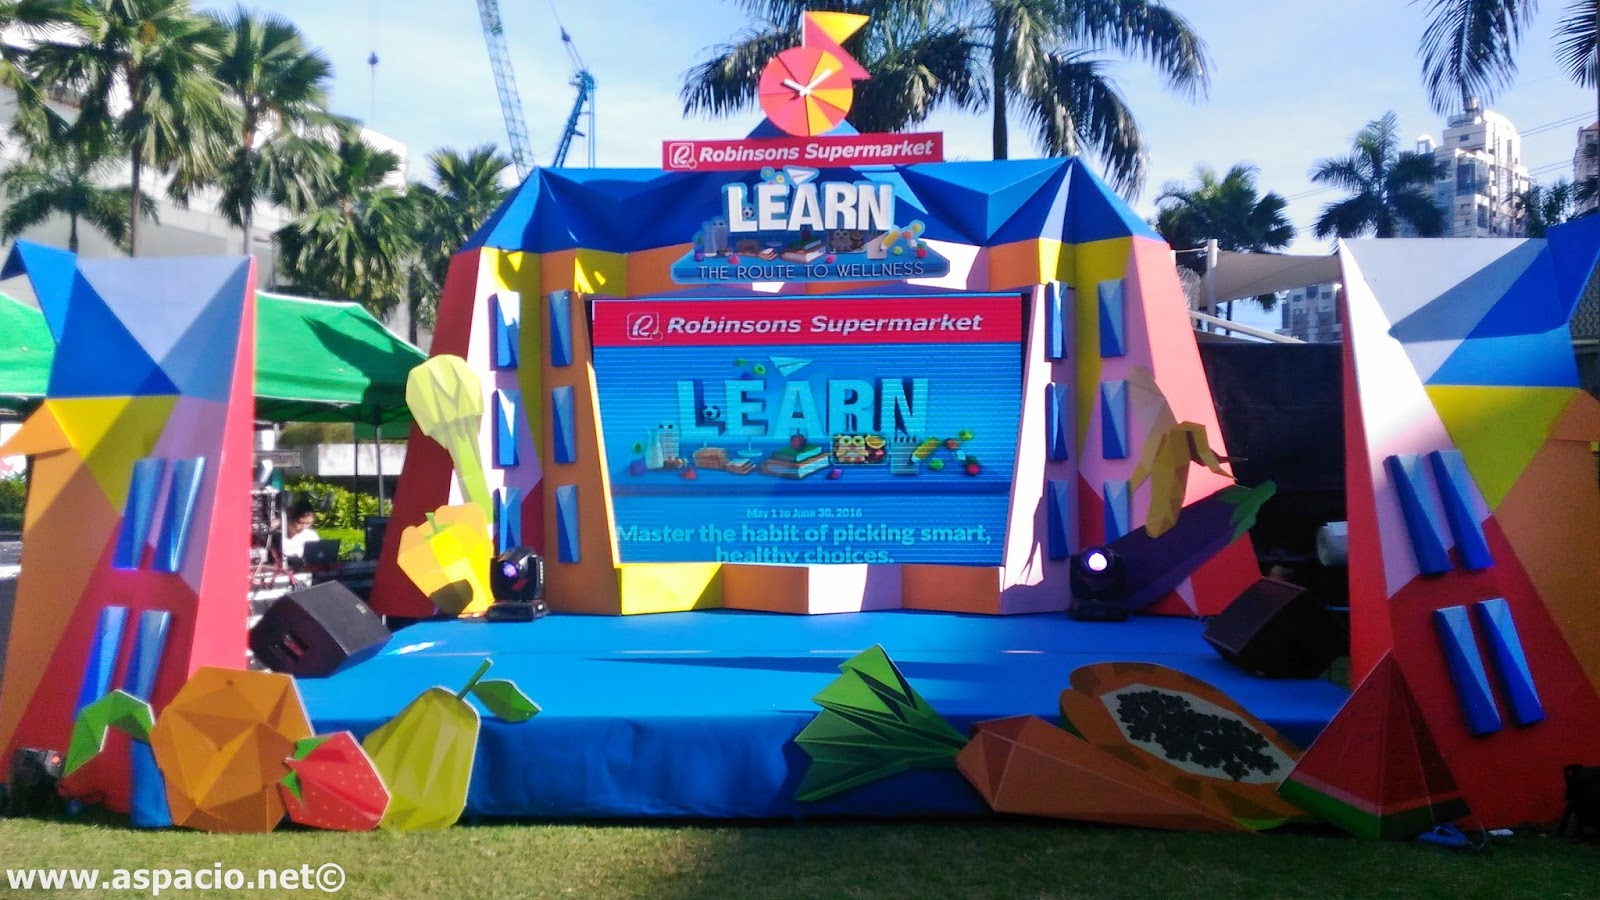 The LEARN Promo for Robinsons Supermarket